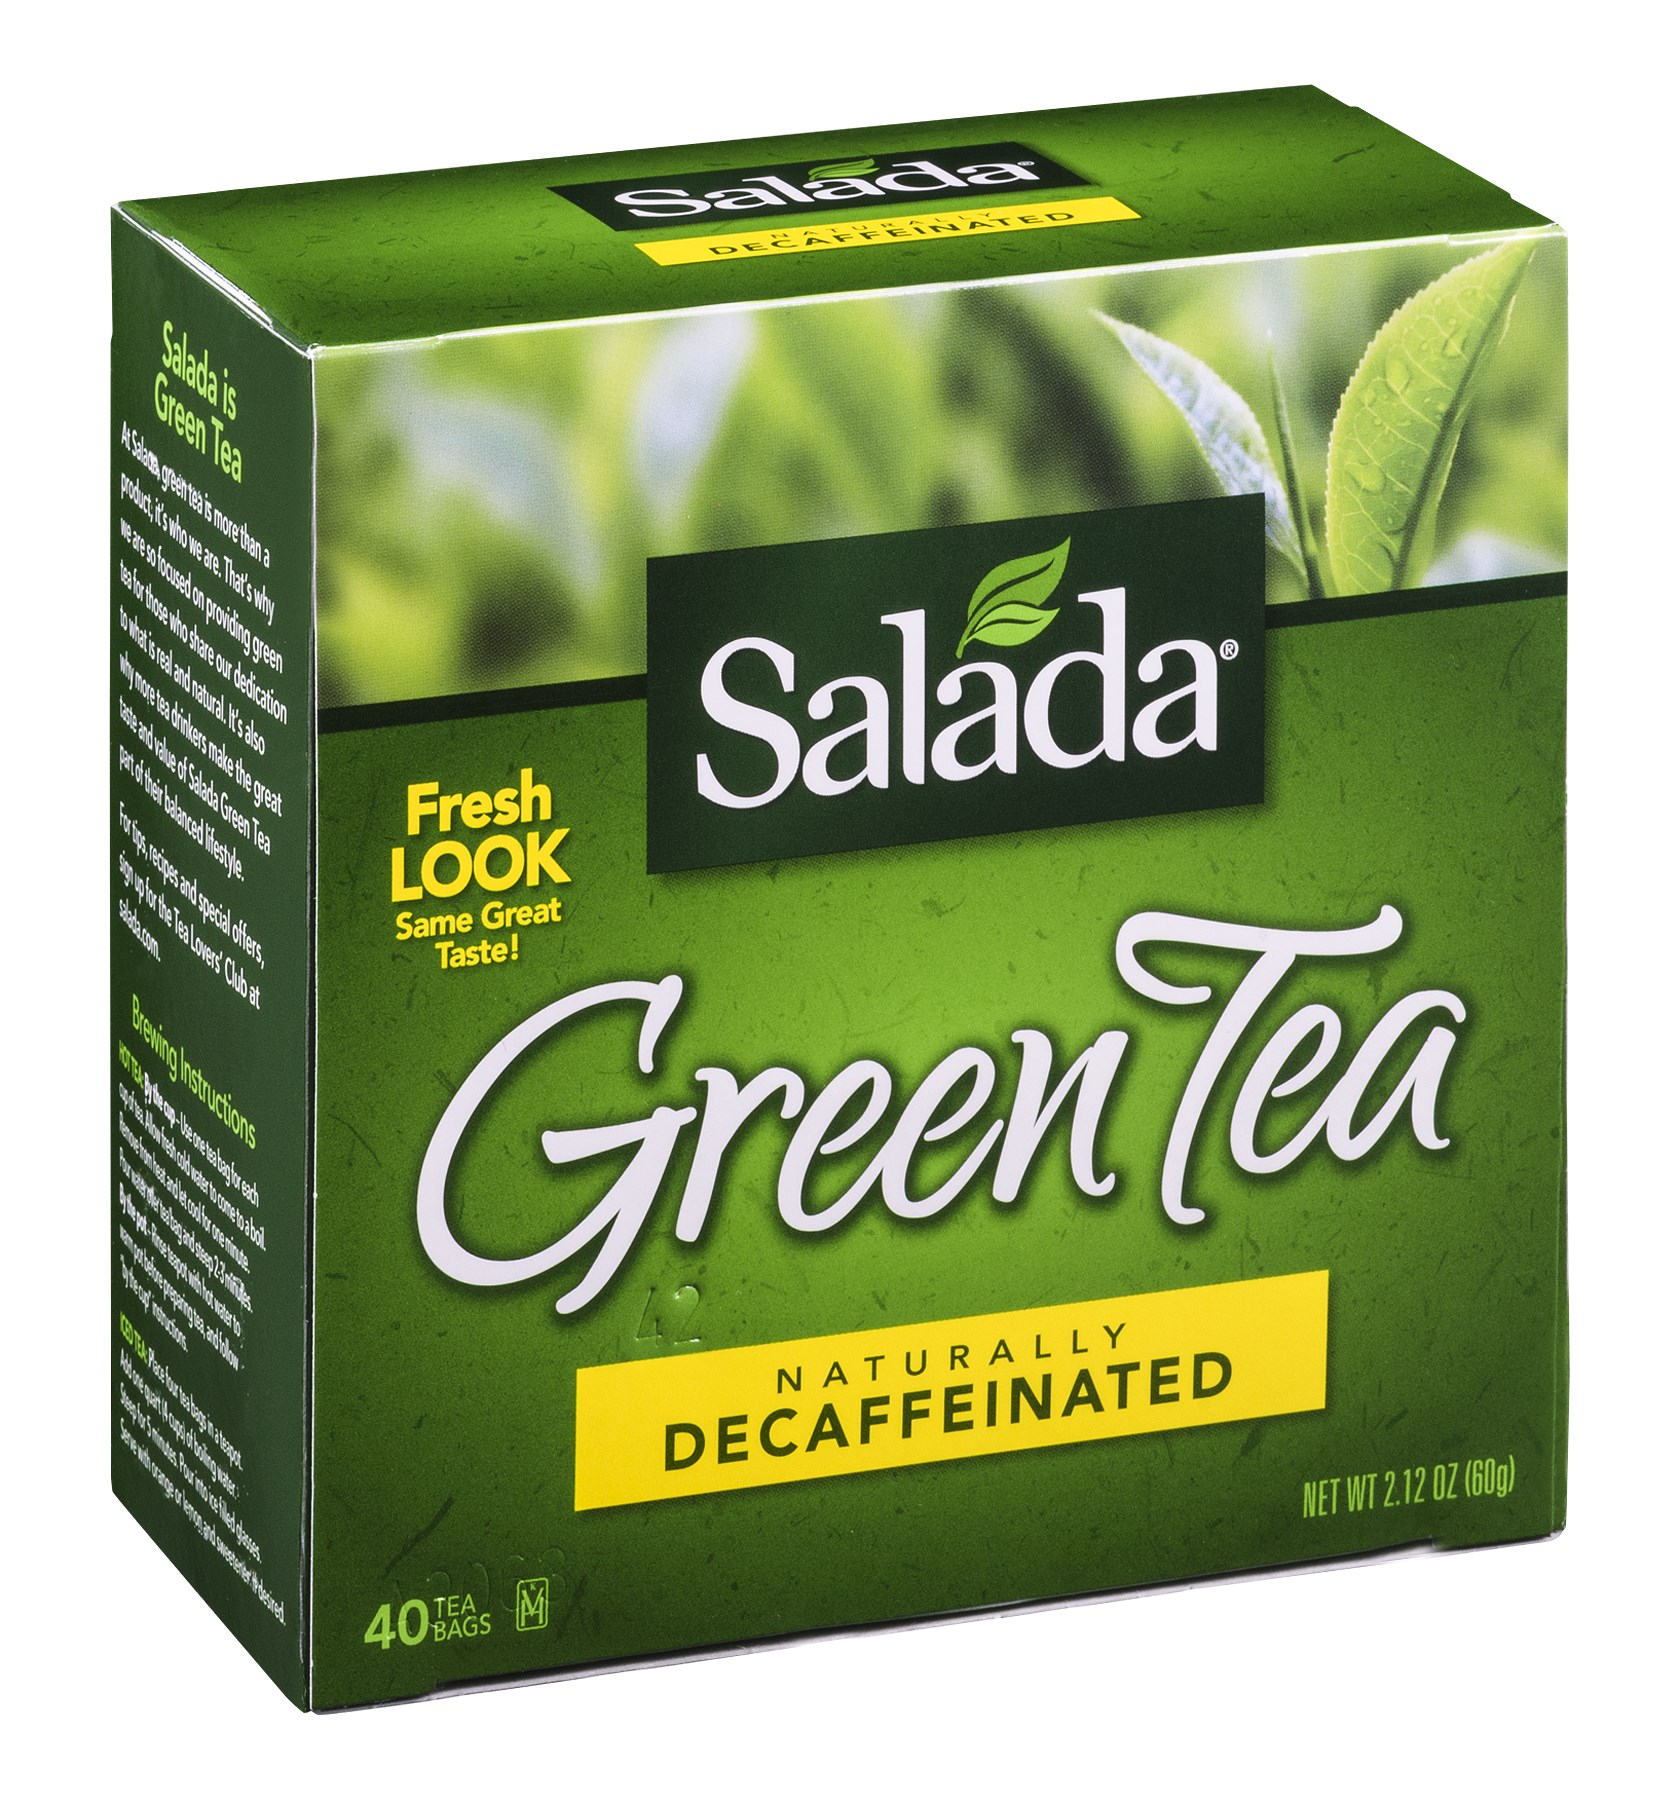 Salada Green Tea, Naturally Decaffinated, 40 CT (Pack of 6)